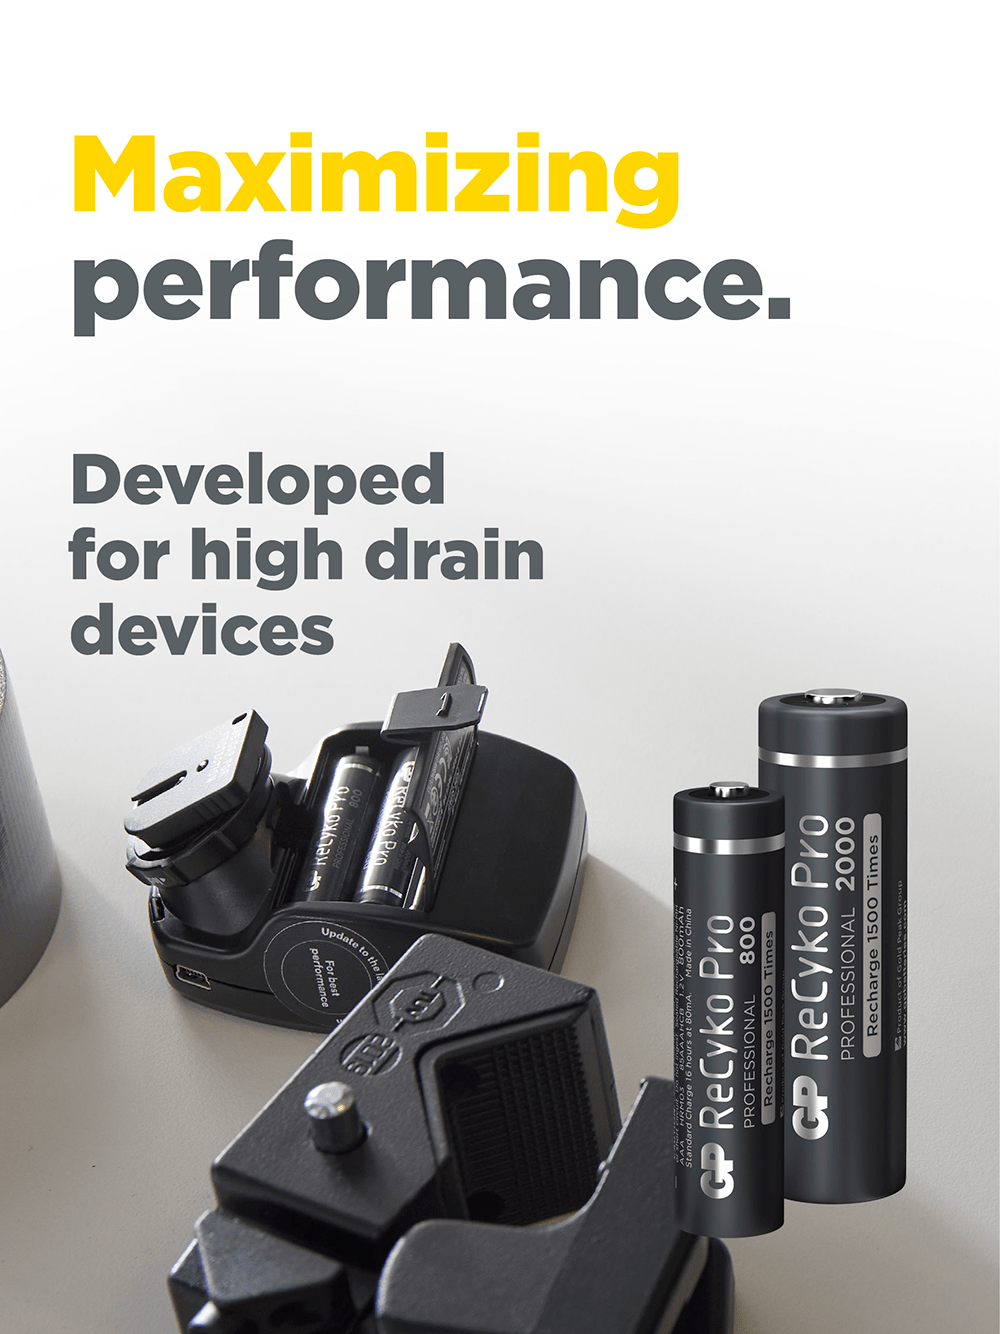 recyko battery - maximizing performance